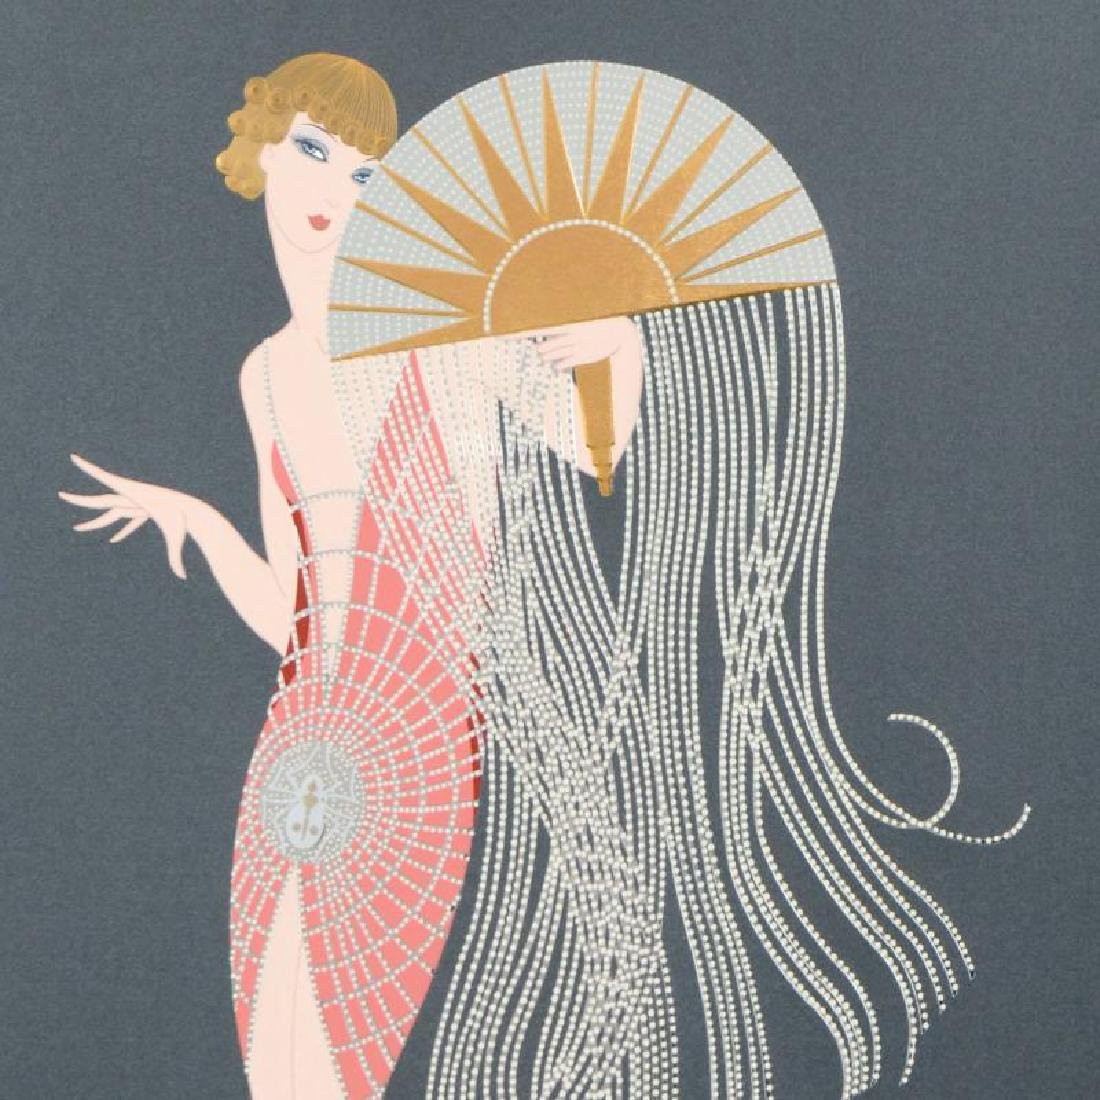 Flapper by Erte (1892-1990) - 2